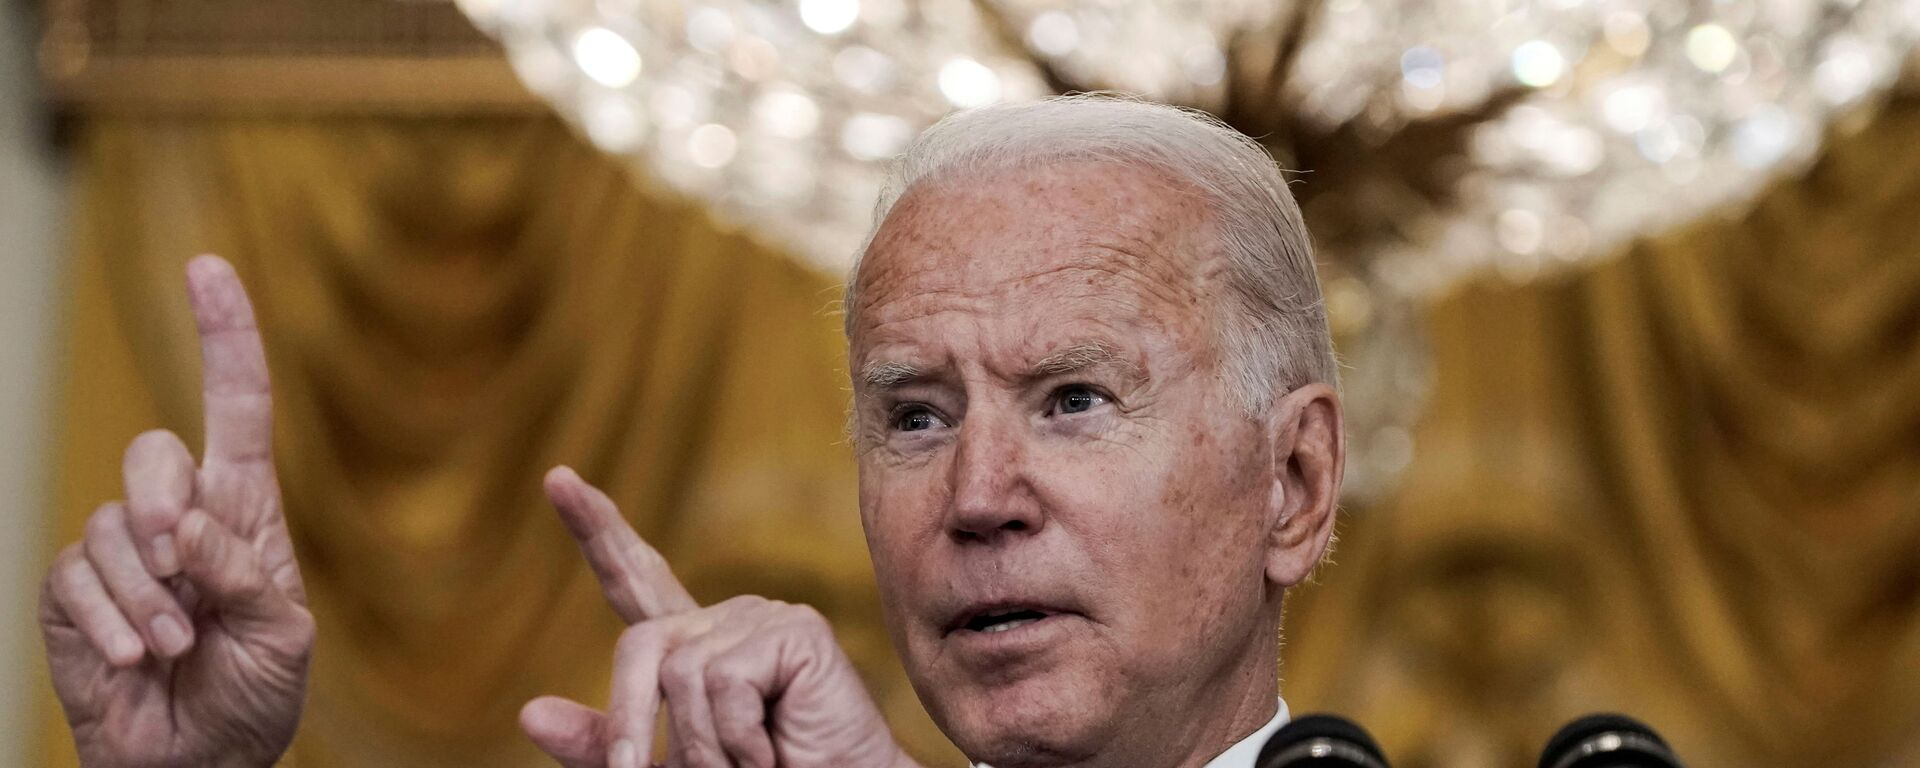 U.S.  President Joe Biden delivers remarks on evacuation efforts and the ongoing situation in Afghanistan during a speech in the East Room at the White House in Washington, U.S., August 20, 2021. - Sputnik International, 1920, 21.08.2021